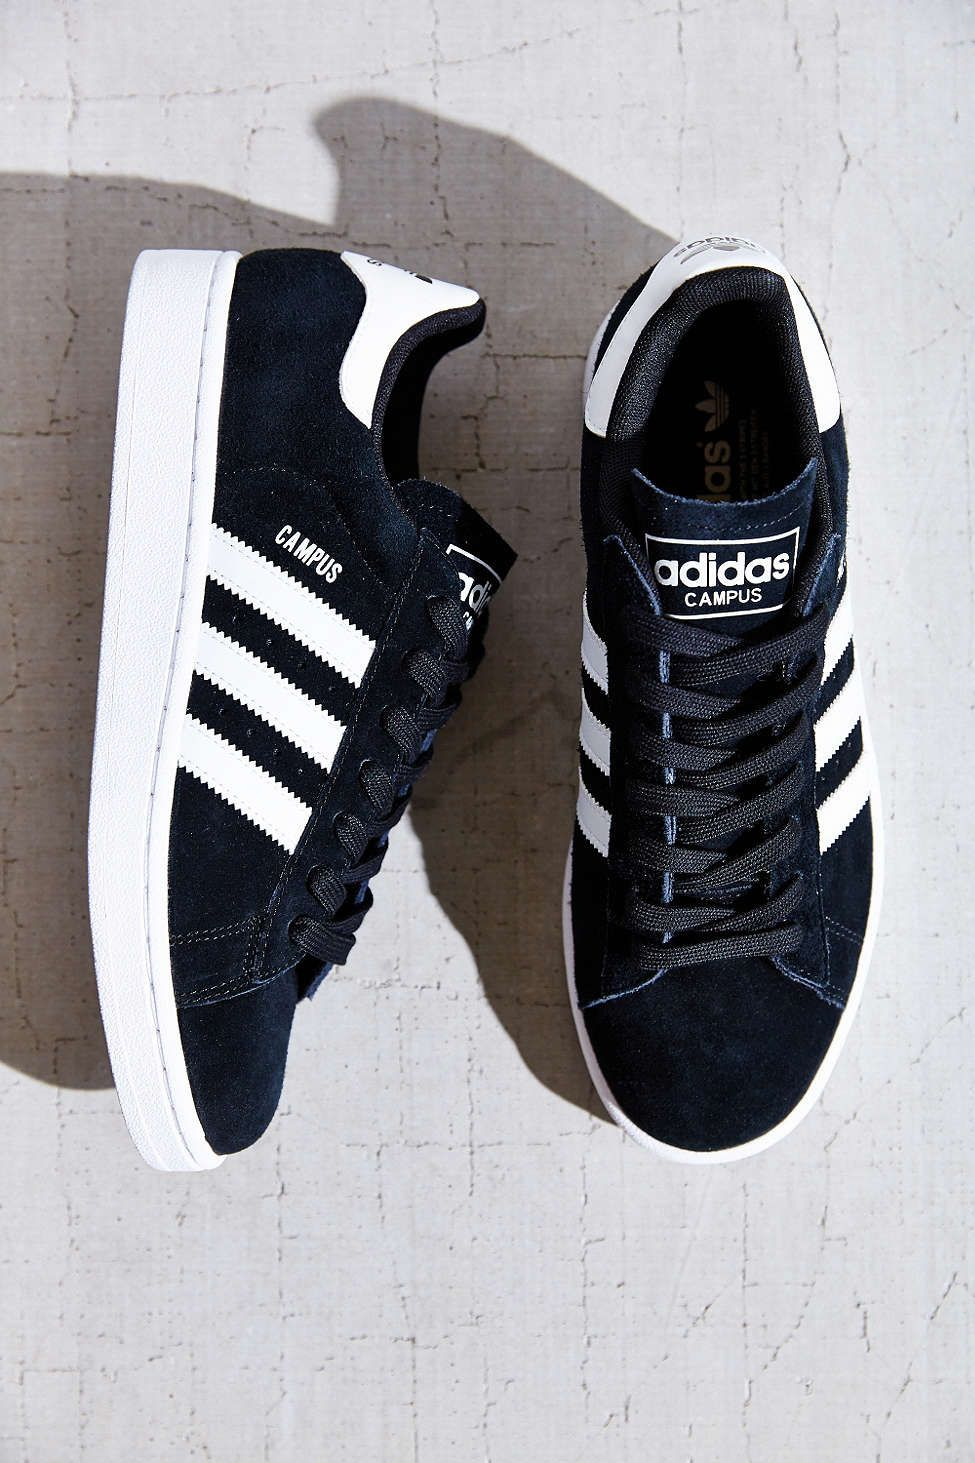 adidas Originals Campus 2 Sneaker | Adidas shoes women ...